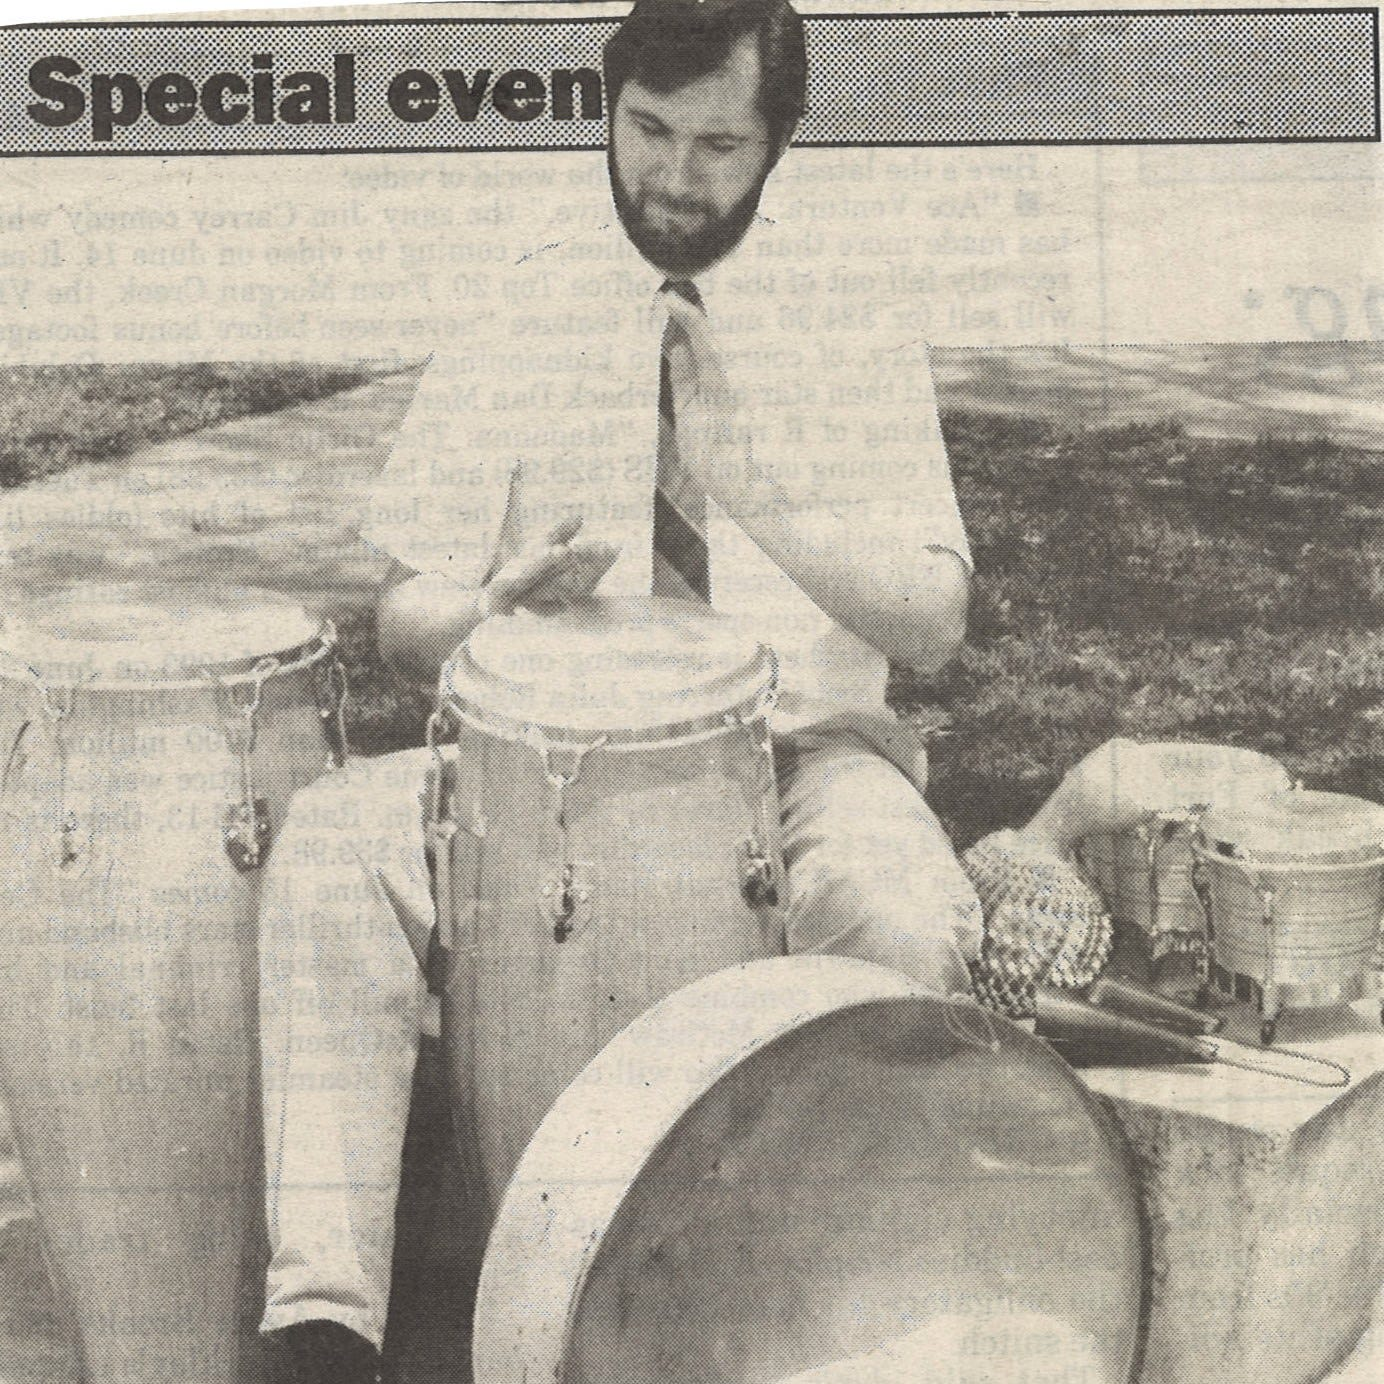 Years ago, Abilene Christian steelband was grooving to masters Mannette, Alexis